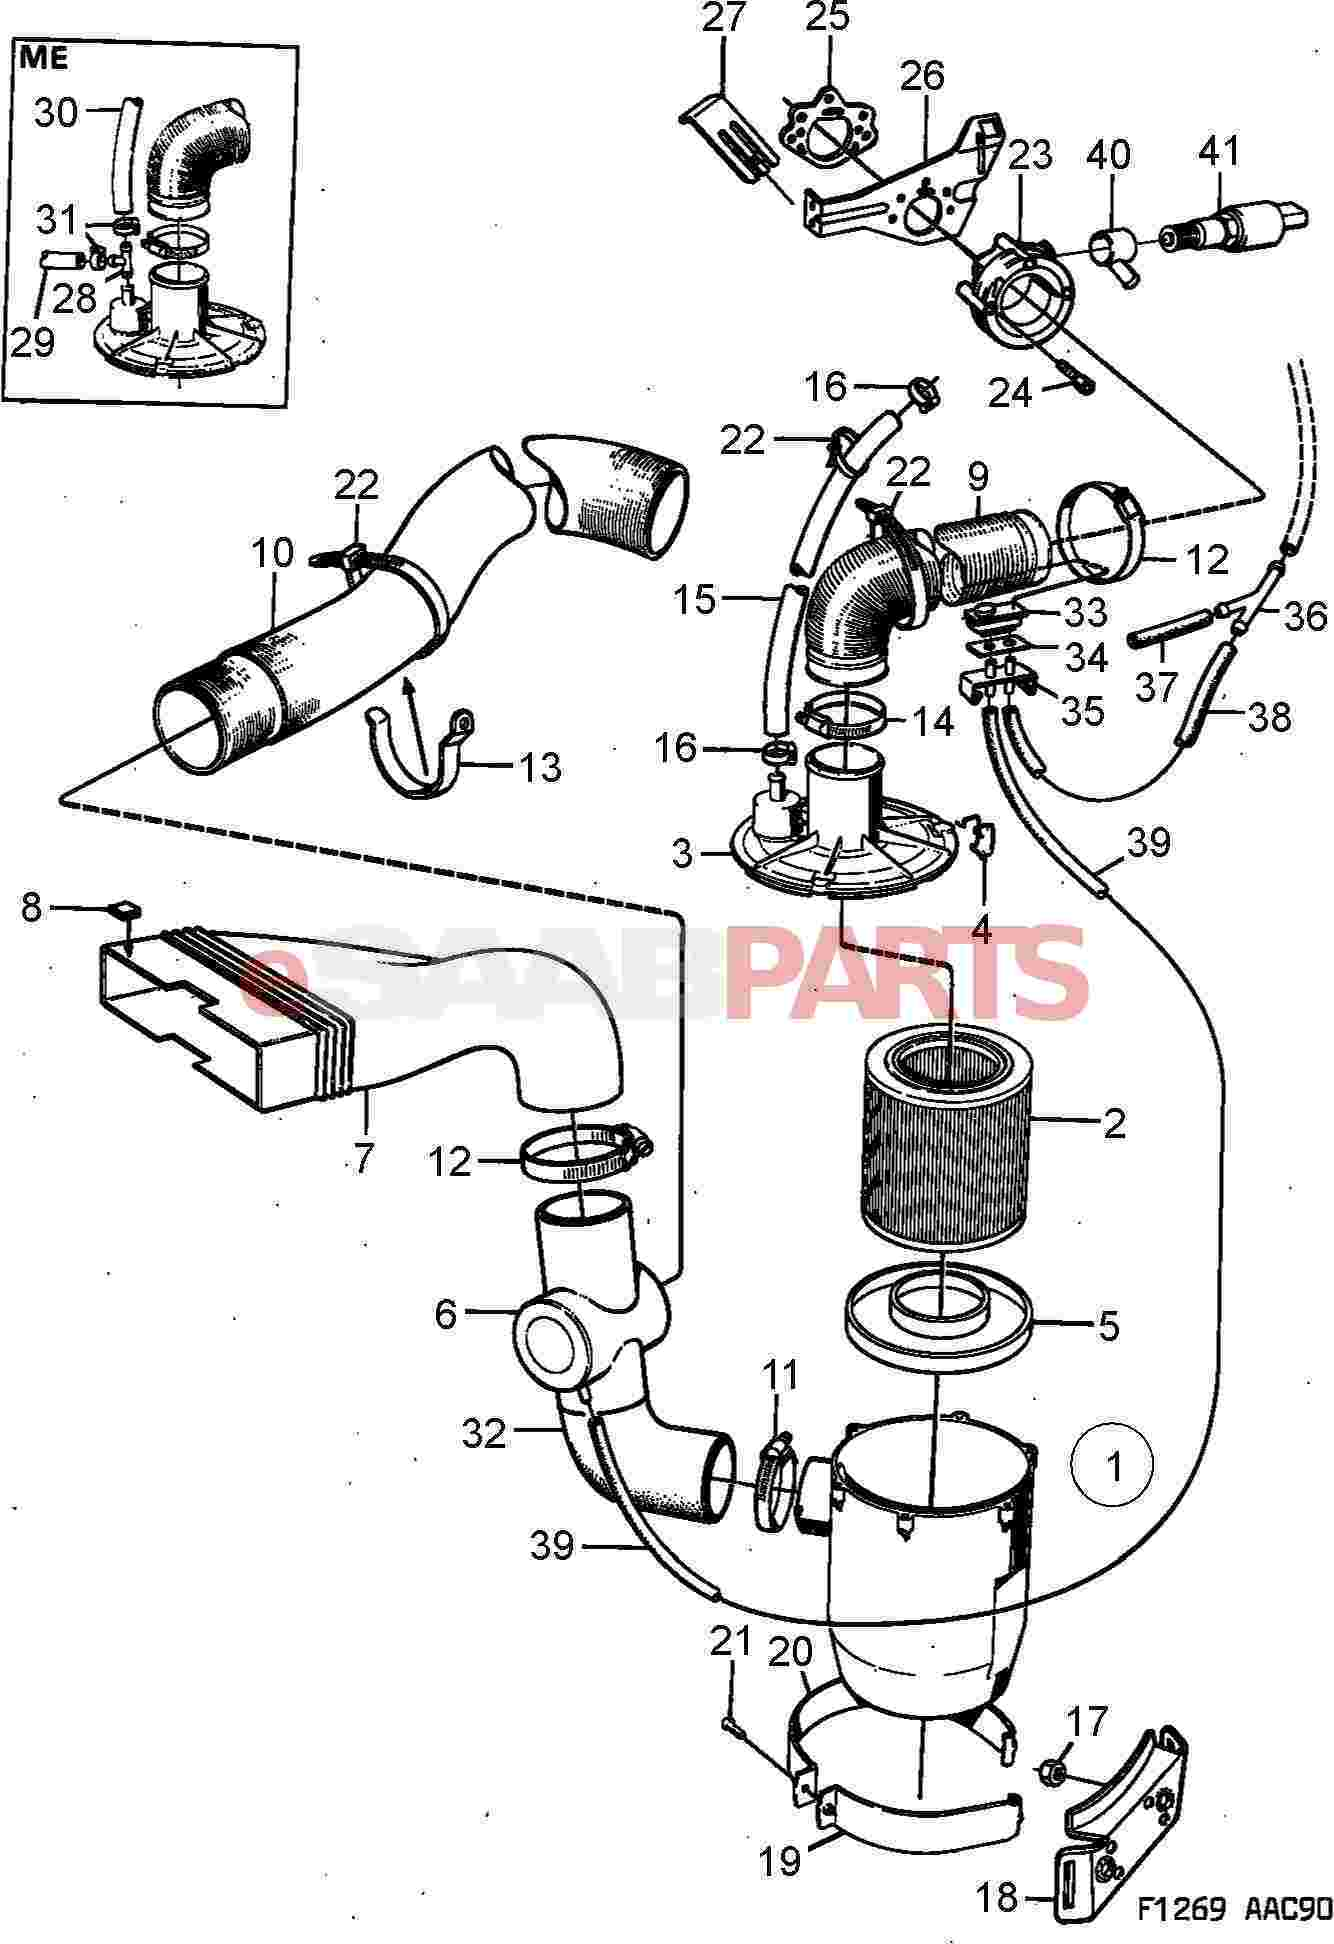 Saab 900 Engine Parts Air Filters Related Filter Diagram Cleaner Carburettor